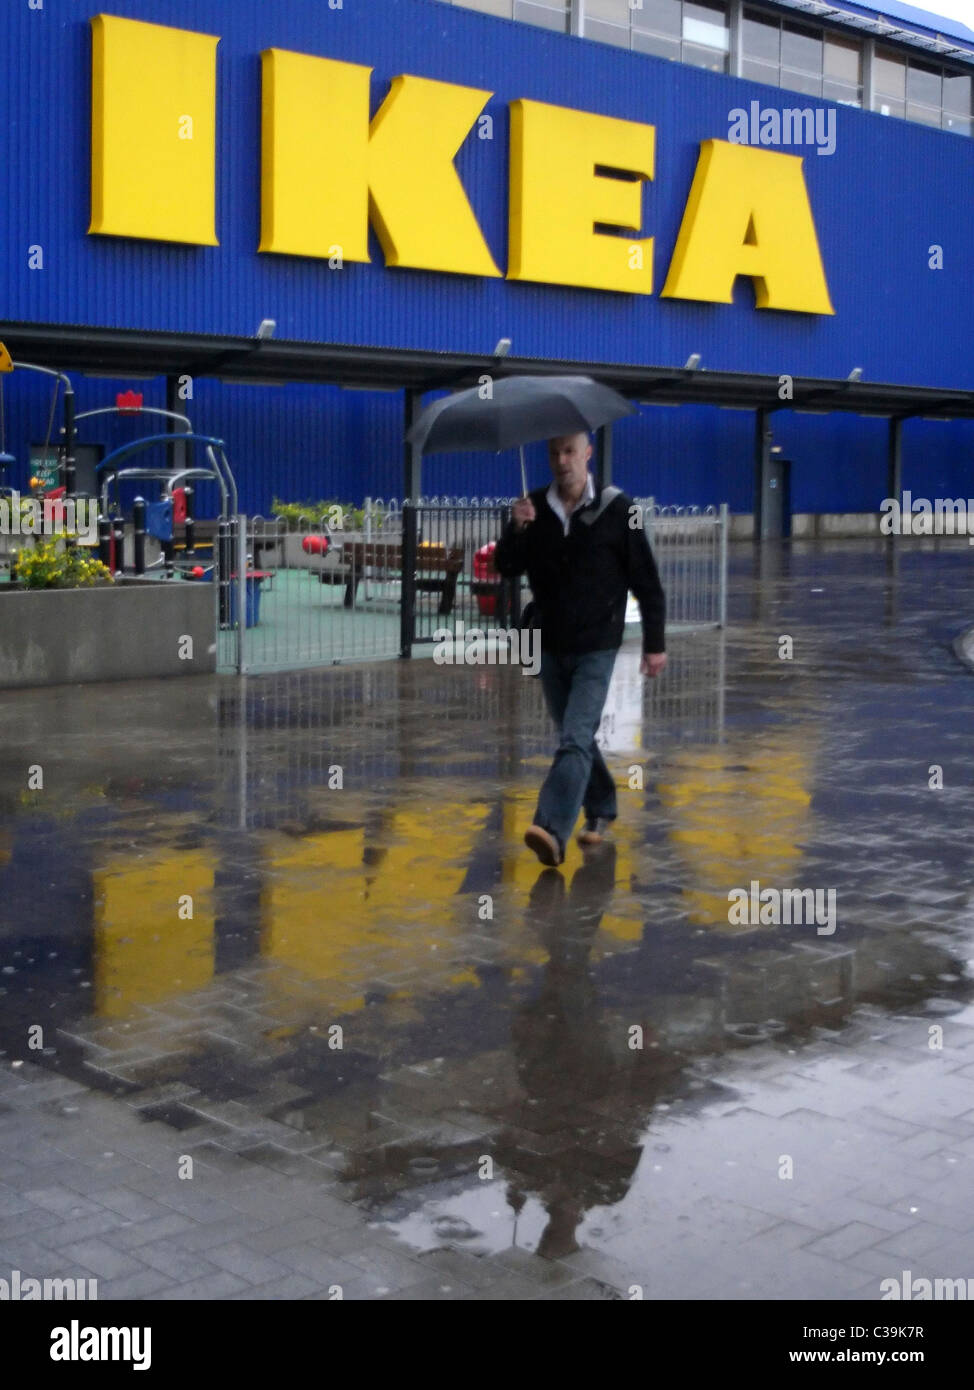 Exterior of an Ikea store. - Stock Image